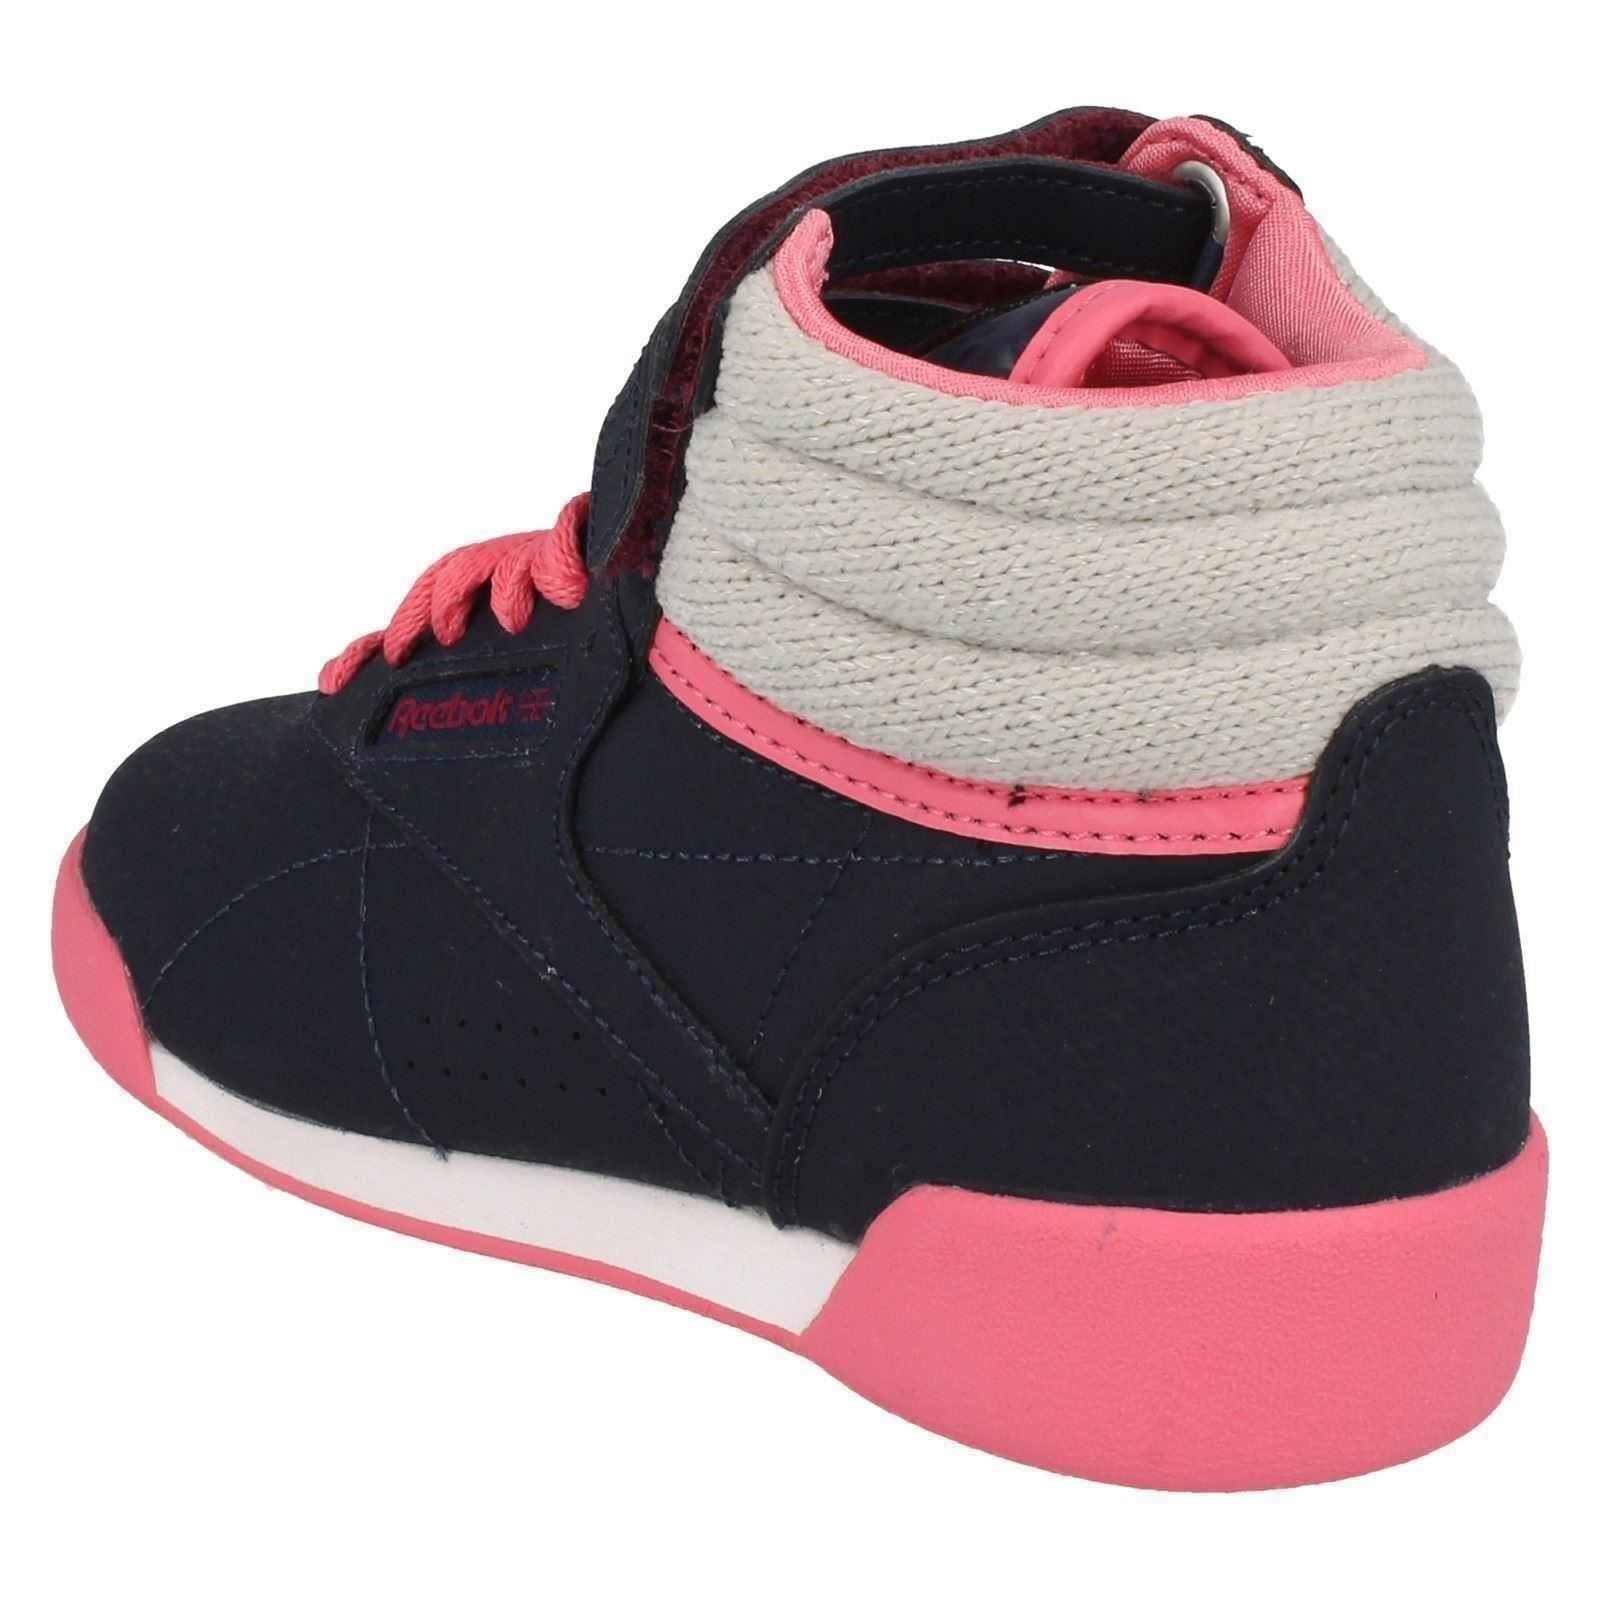 Girls Reebok Trainers 'Hi Cozy Craze' Coated Leather/Textile The Style ~ K